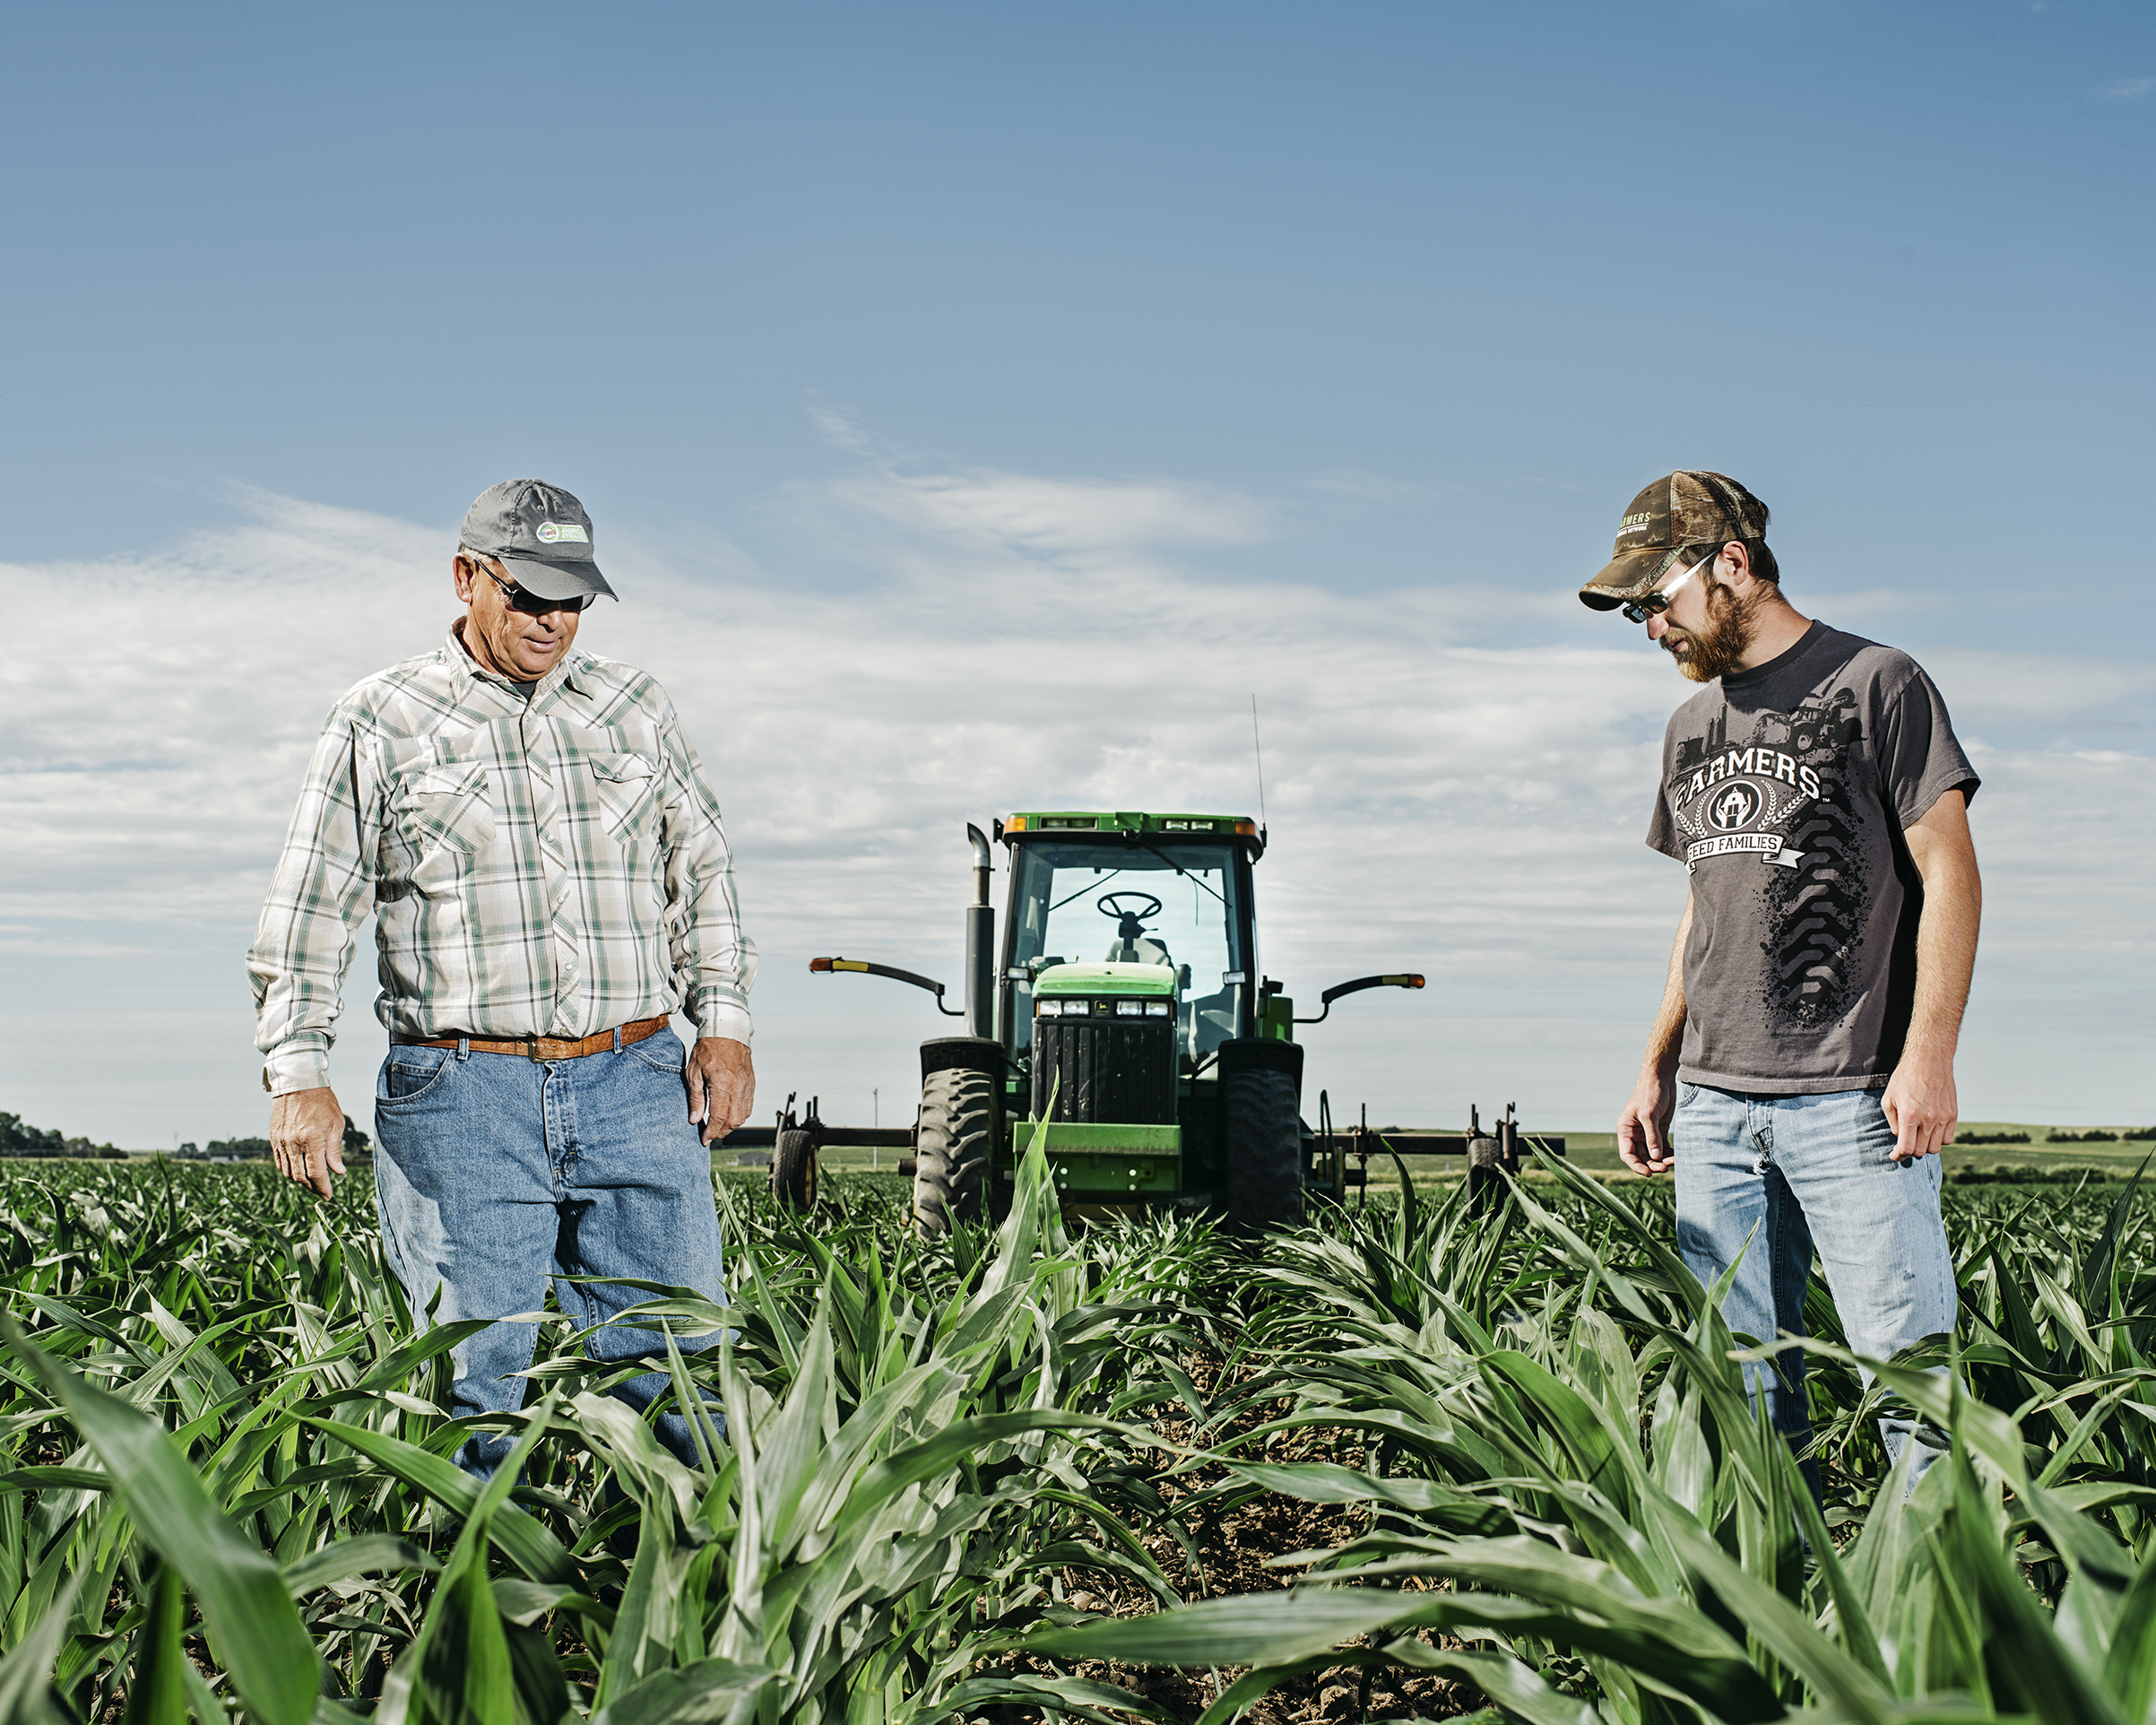 Guy Mills and his son James examine soil depth while hilling a cornfield with a John Deere tractor outside of Ansley, Neb., on June 19